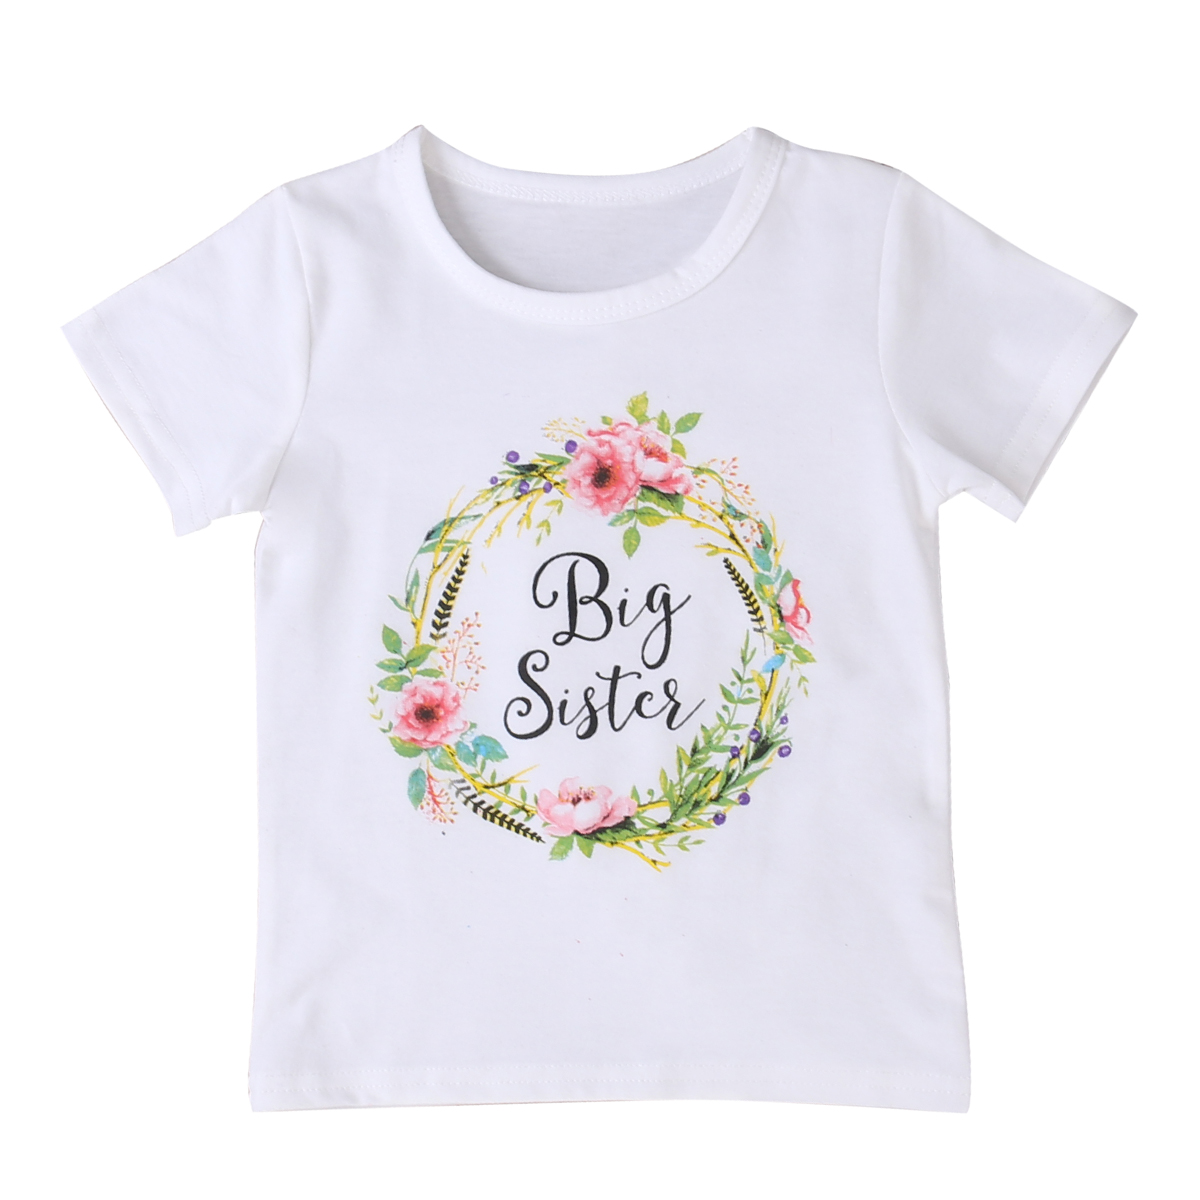 2017 Summer Newly Baby Girl Clothes Family Match Little Big Sister Match Clothes Jumpsuit Romper Outfits Tops Girls T-Shirts